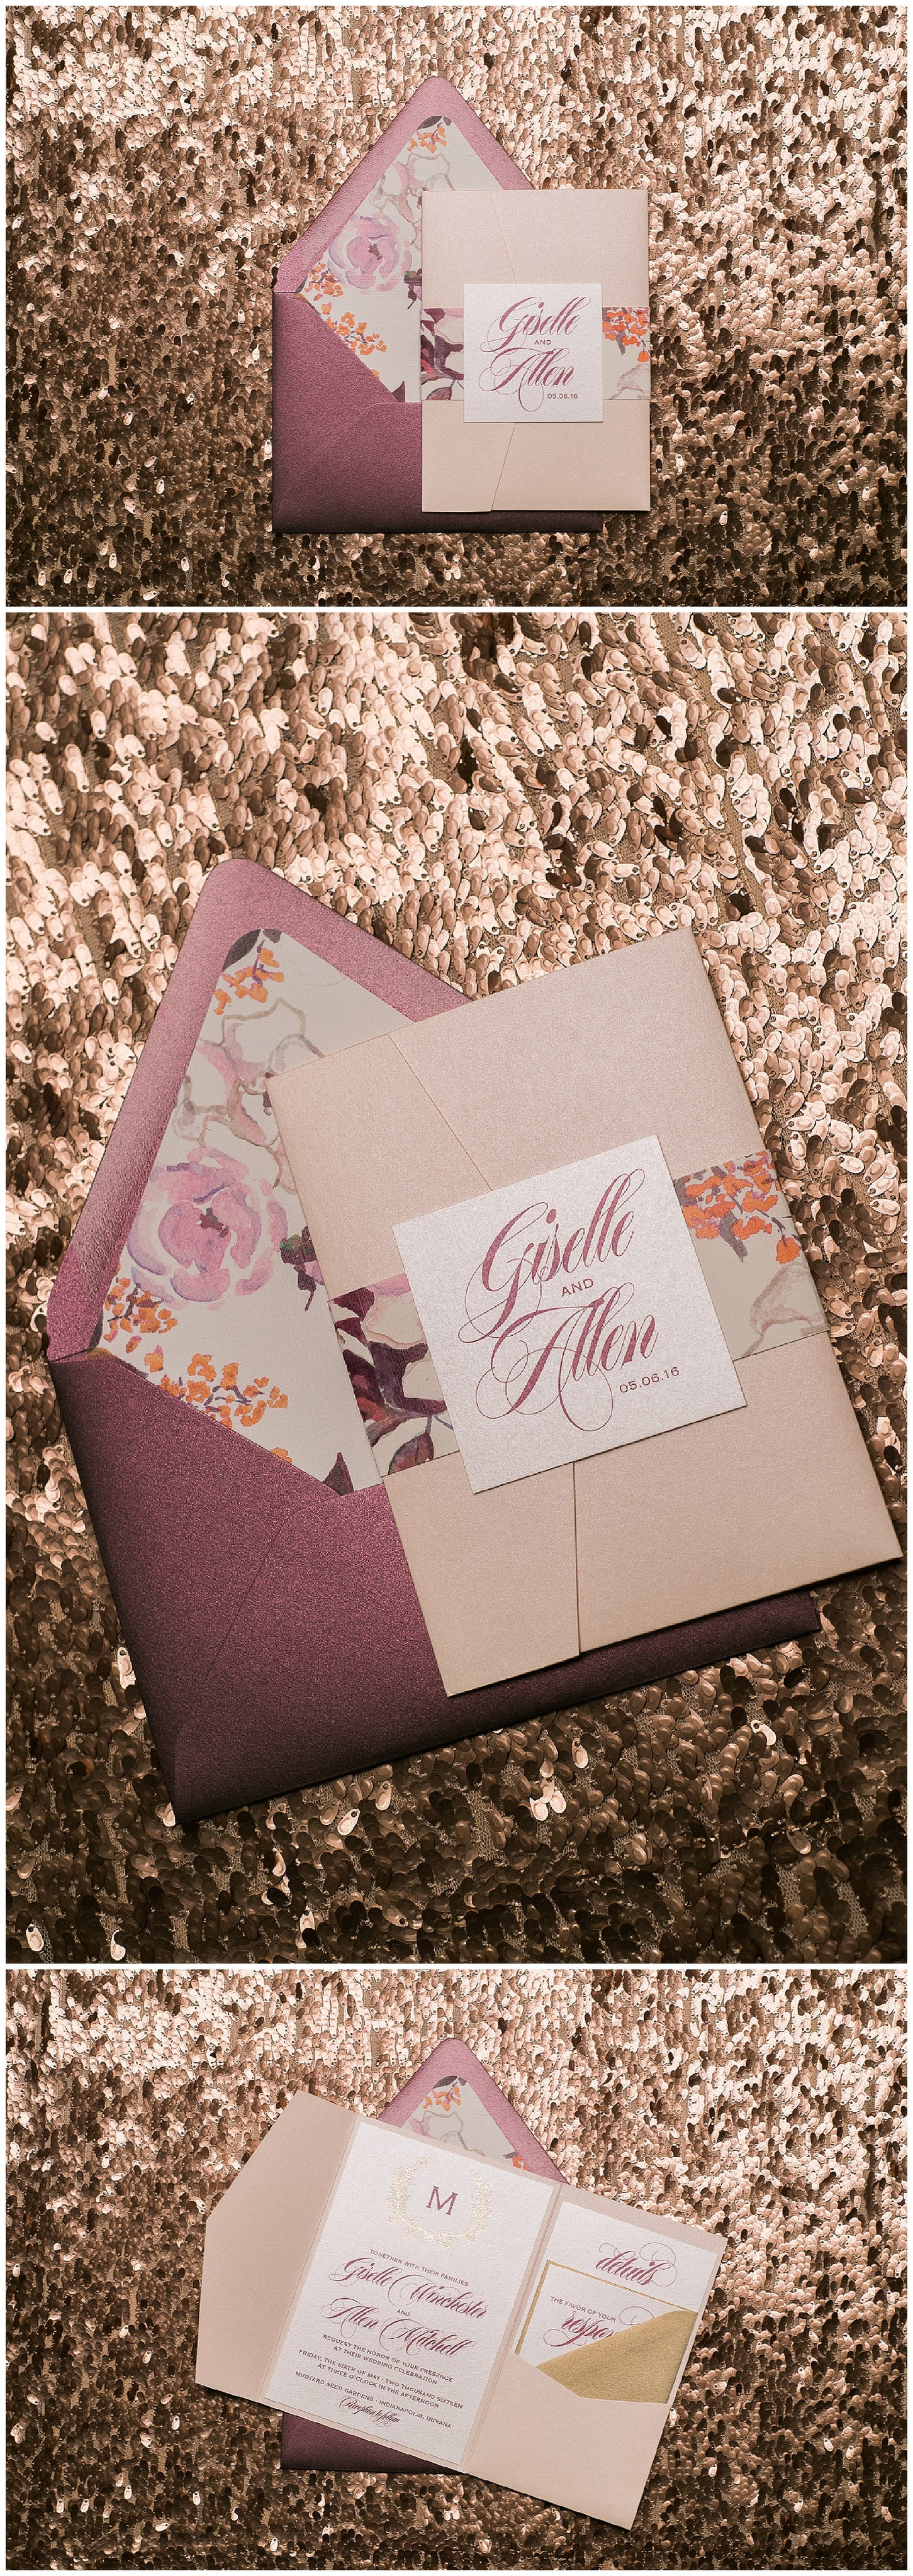 Wedding Invitations, Blush and Burgundy, Foil and Digital Printing, Floral Details, Giselle Suite, Just Invite Me